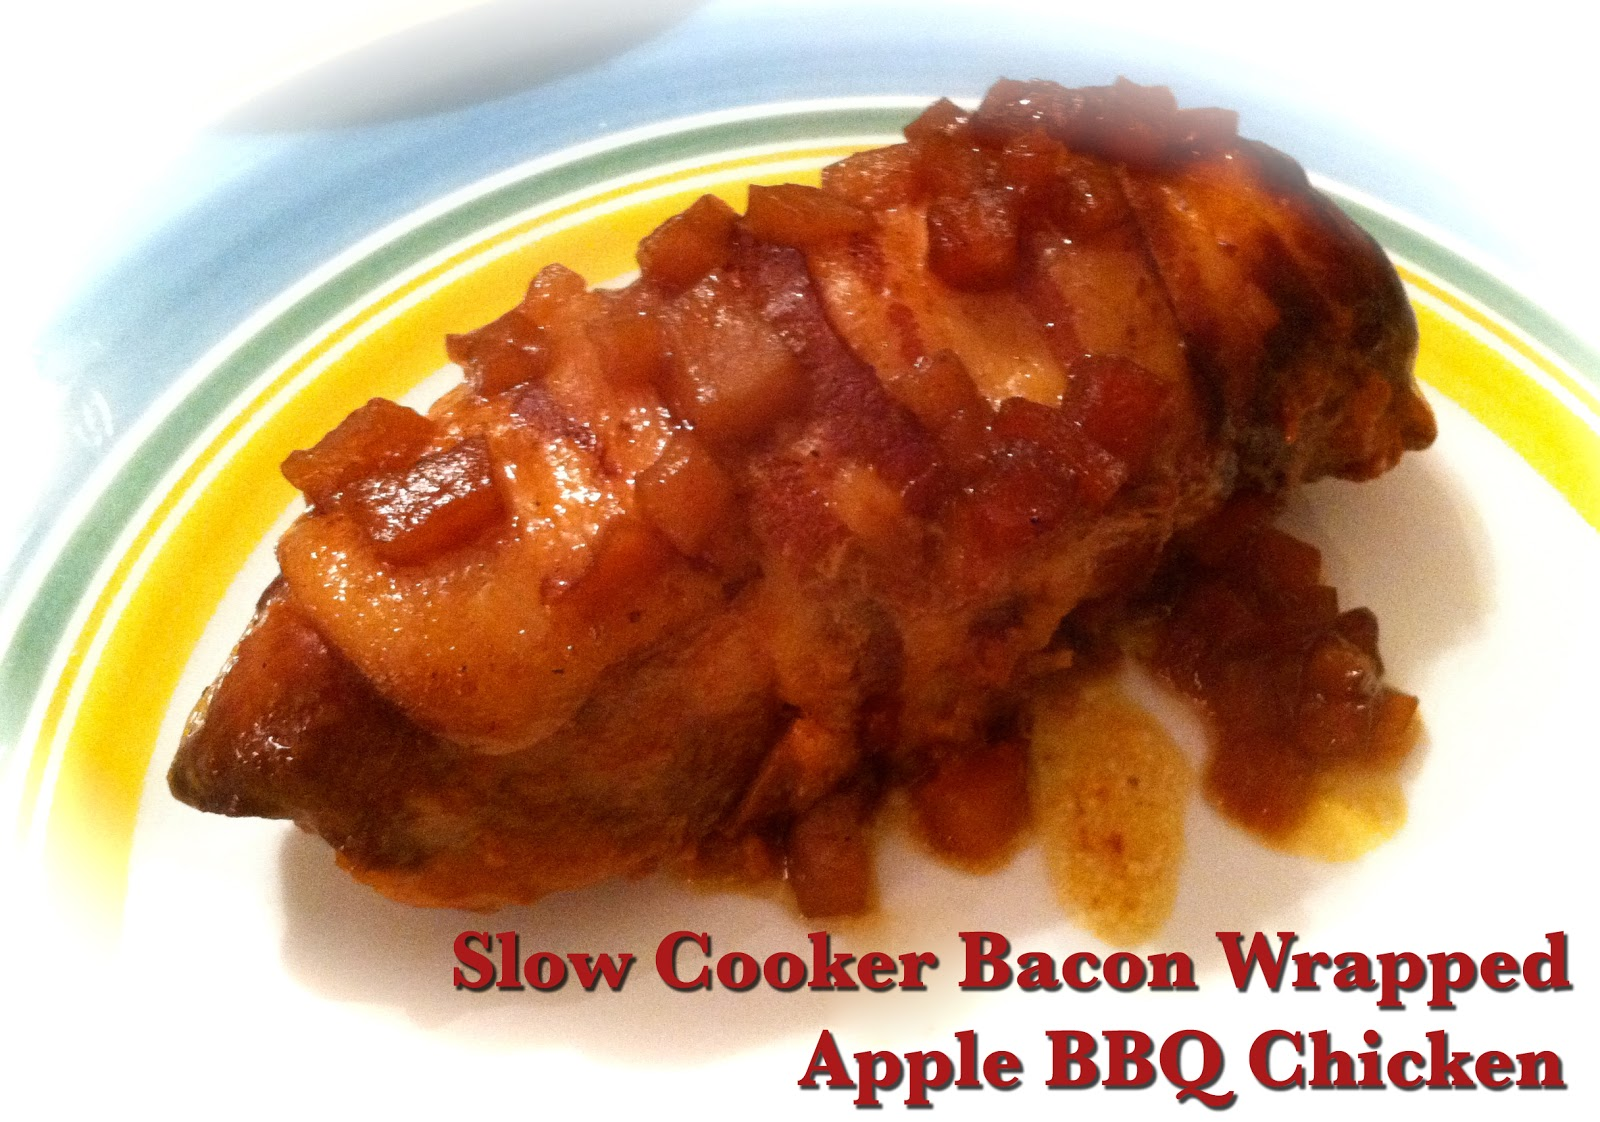 Slow Cooker Bacon Wrapped Apple BBQ Chicken | Making Memories